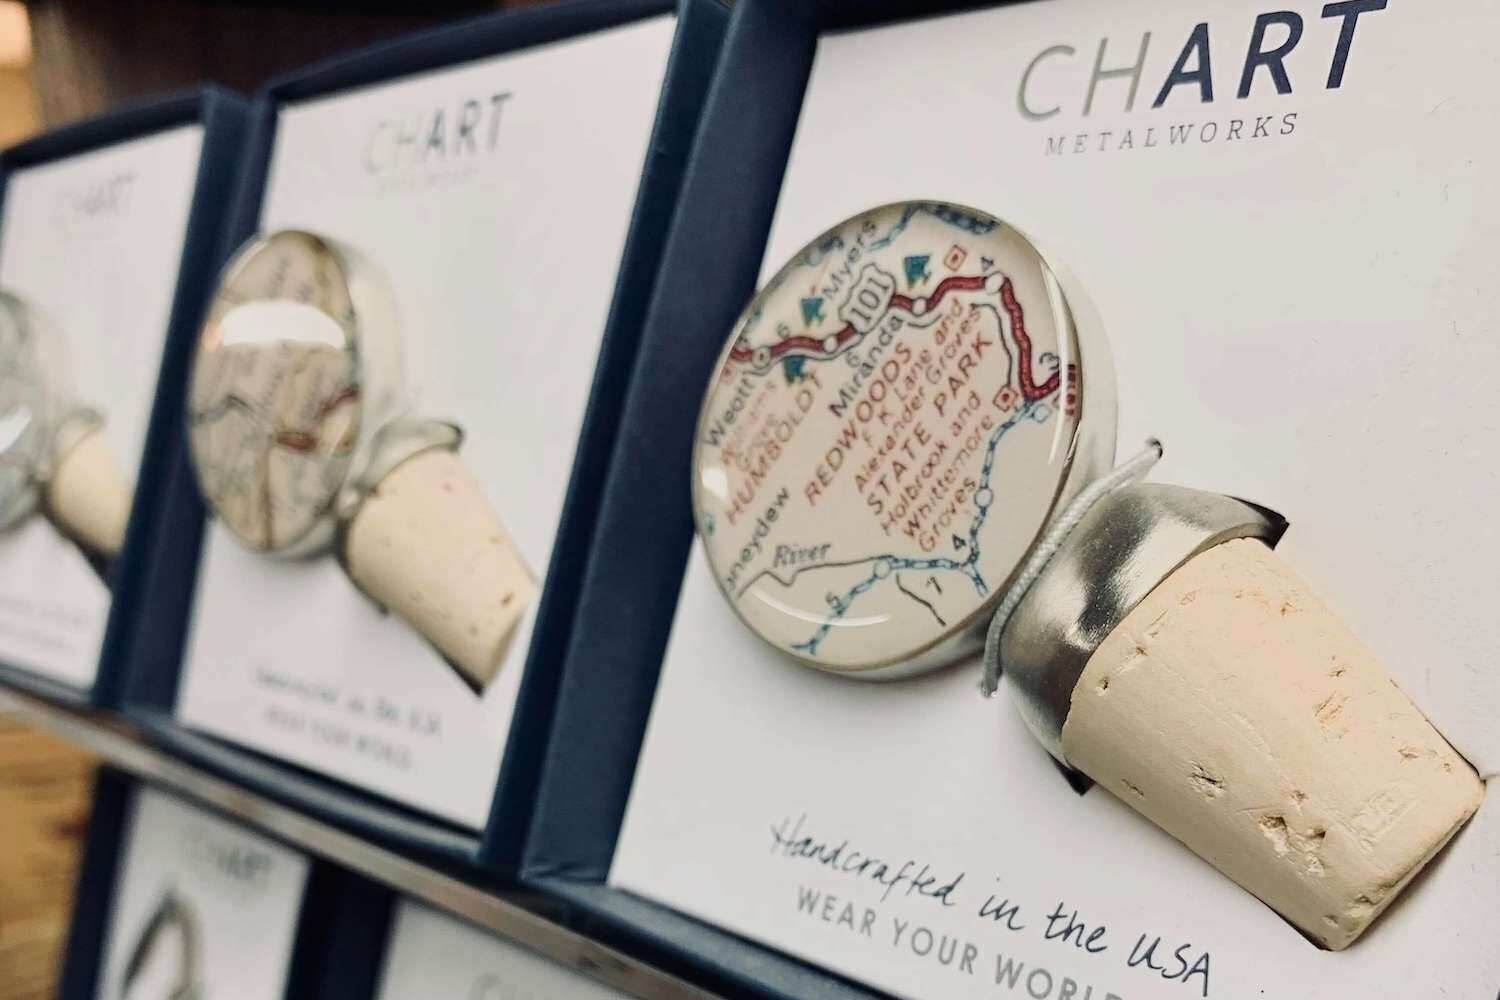 Local Gifts - We offer a variety of locally made items that make the perfect gift for that special occasion! Chart Metalworks creates vessels for you to tell your own custom story – where you grew up, site of your engagement or marriage, favorite vacation spot or current residence.